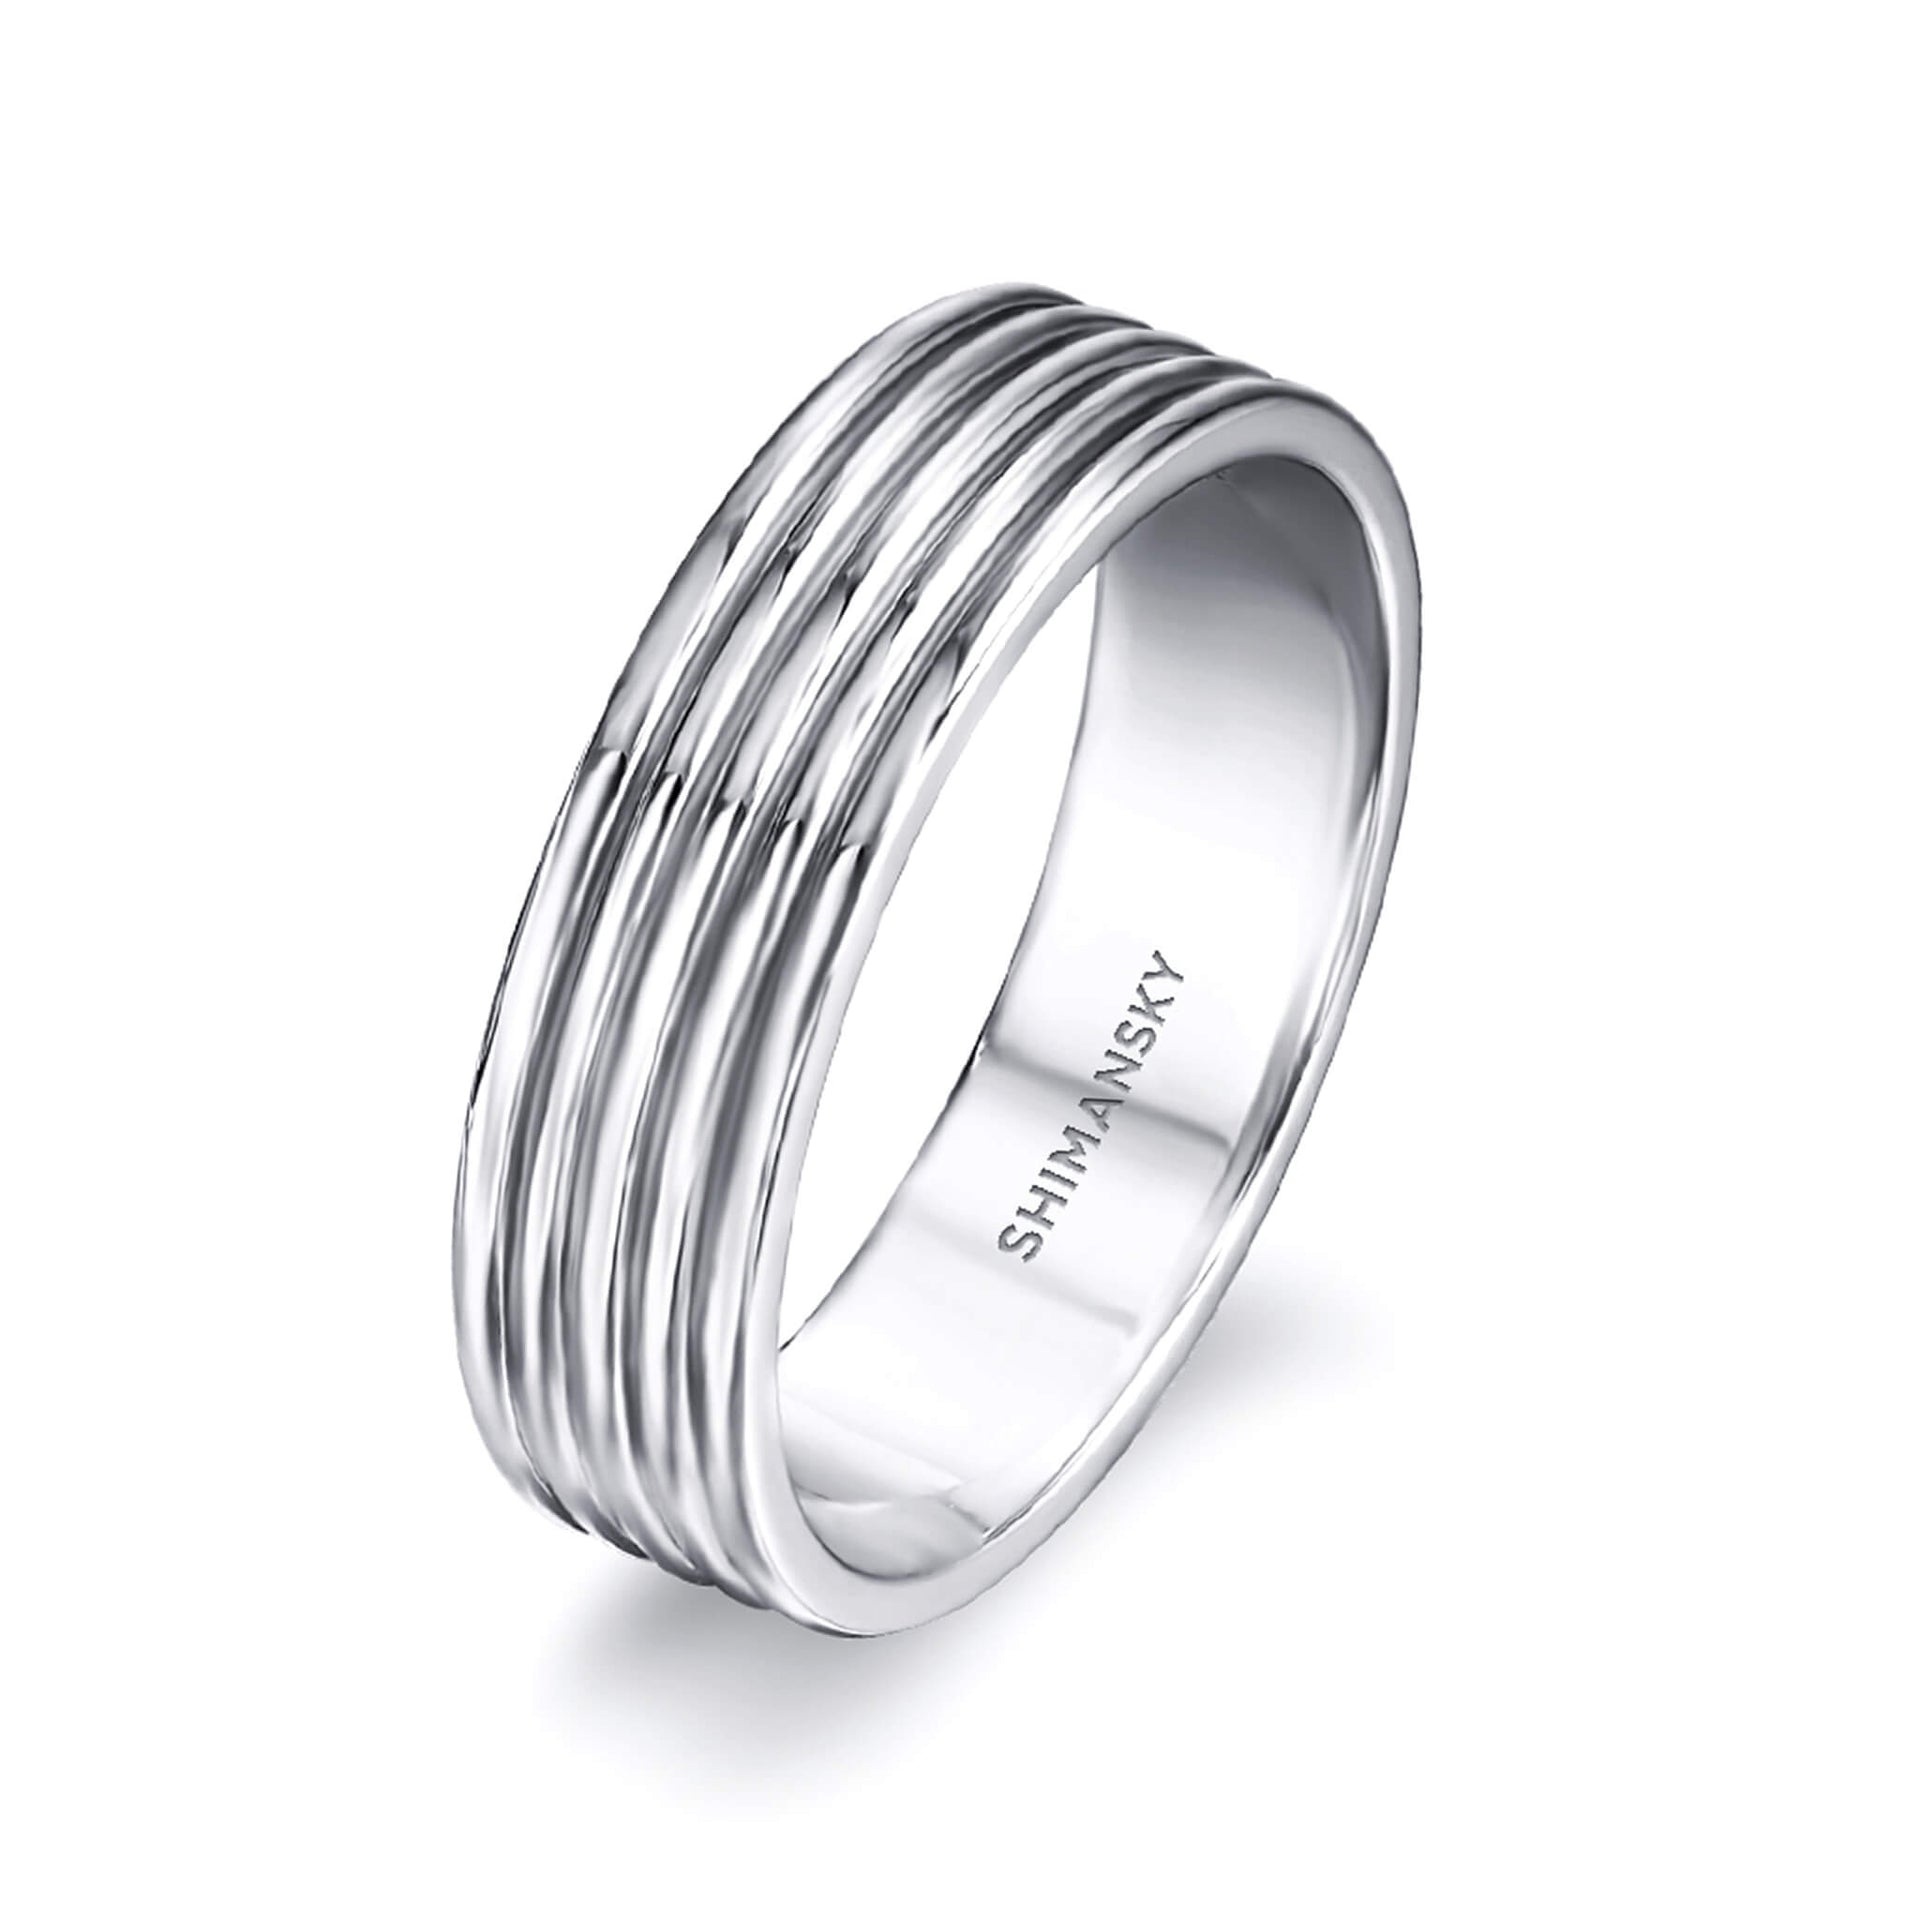 Max-Line Polished Five Rounded Wedding Band in Palladium 3D View